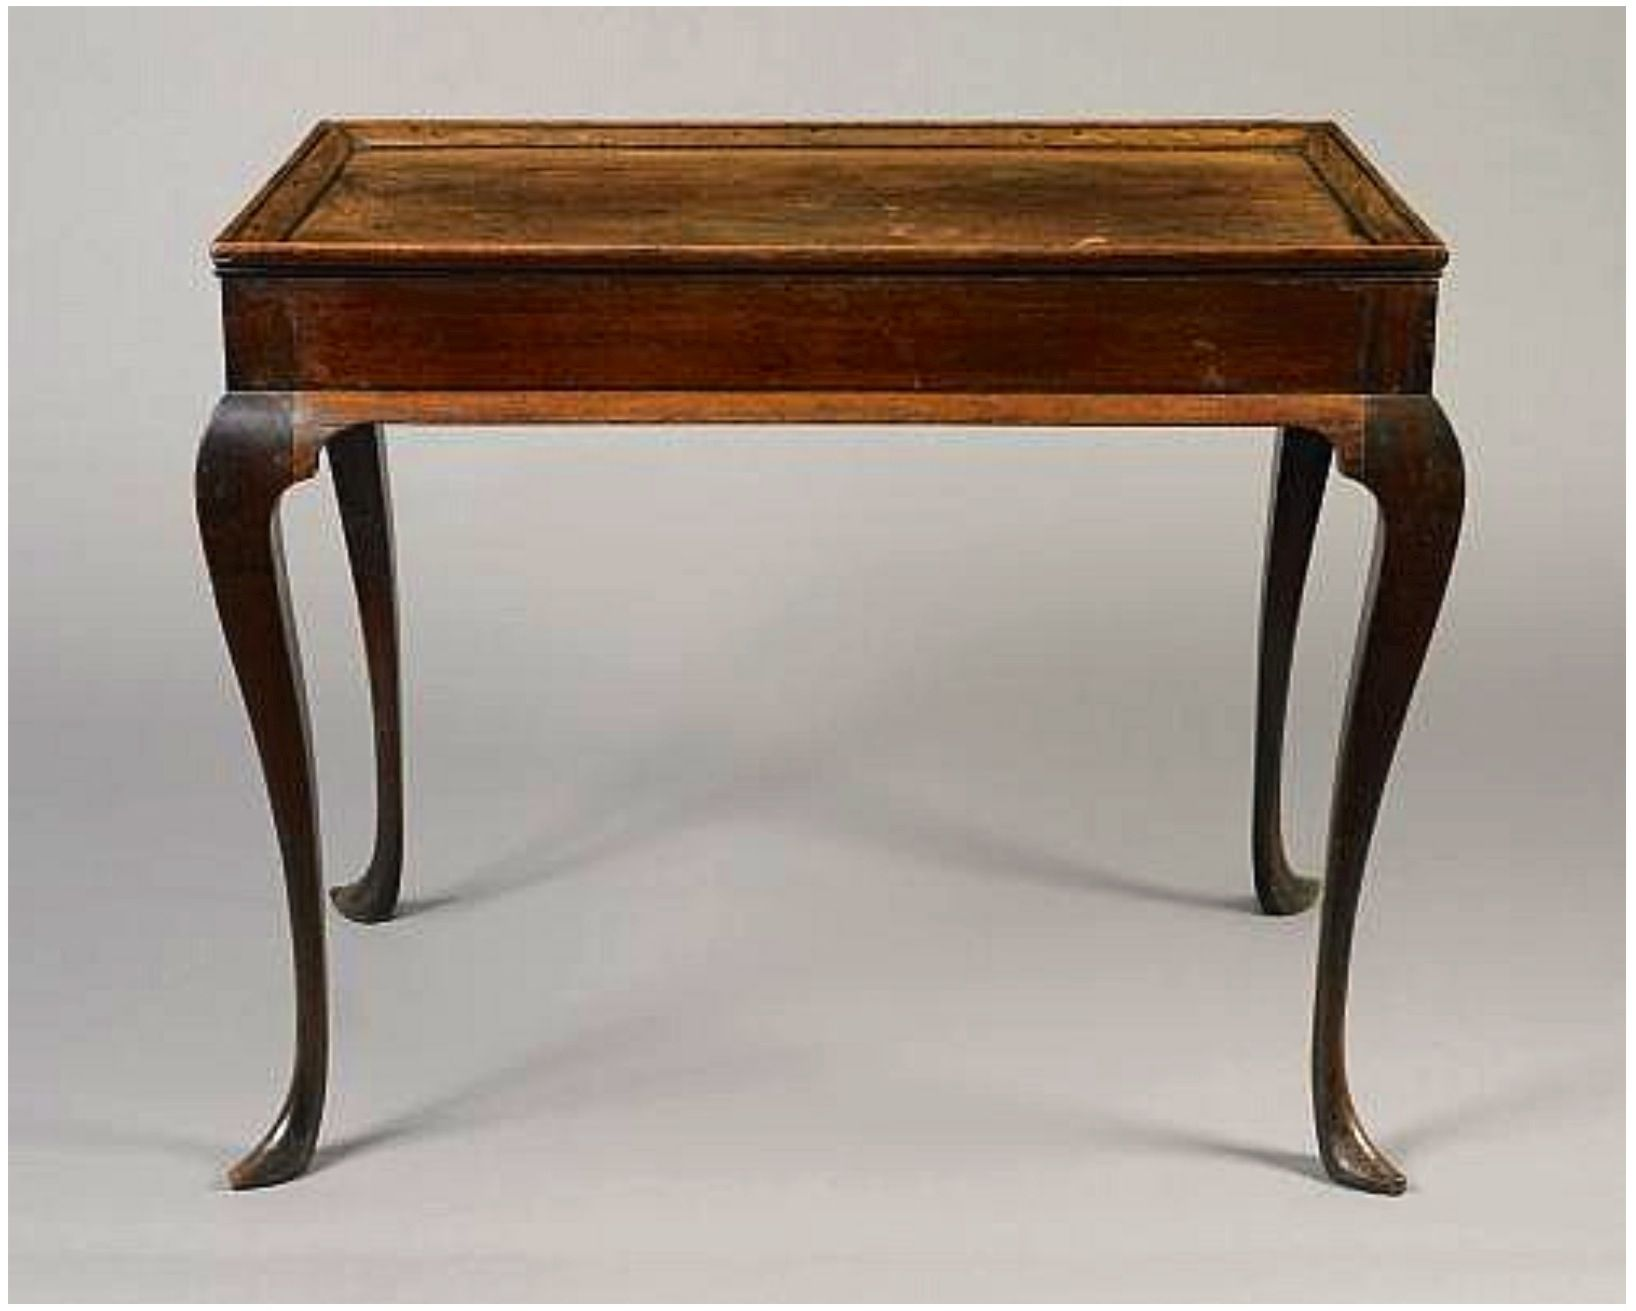 Queen Anne Desks 27 For Sale At 1stdibs >> Pin On Tables Stands